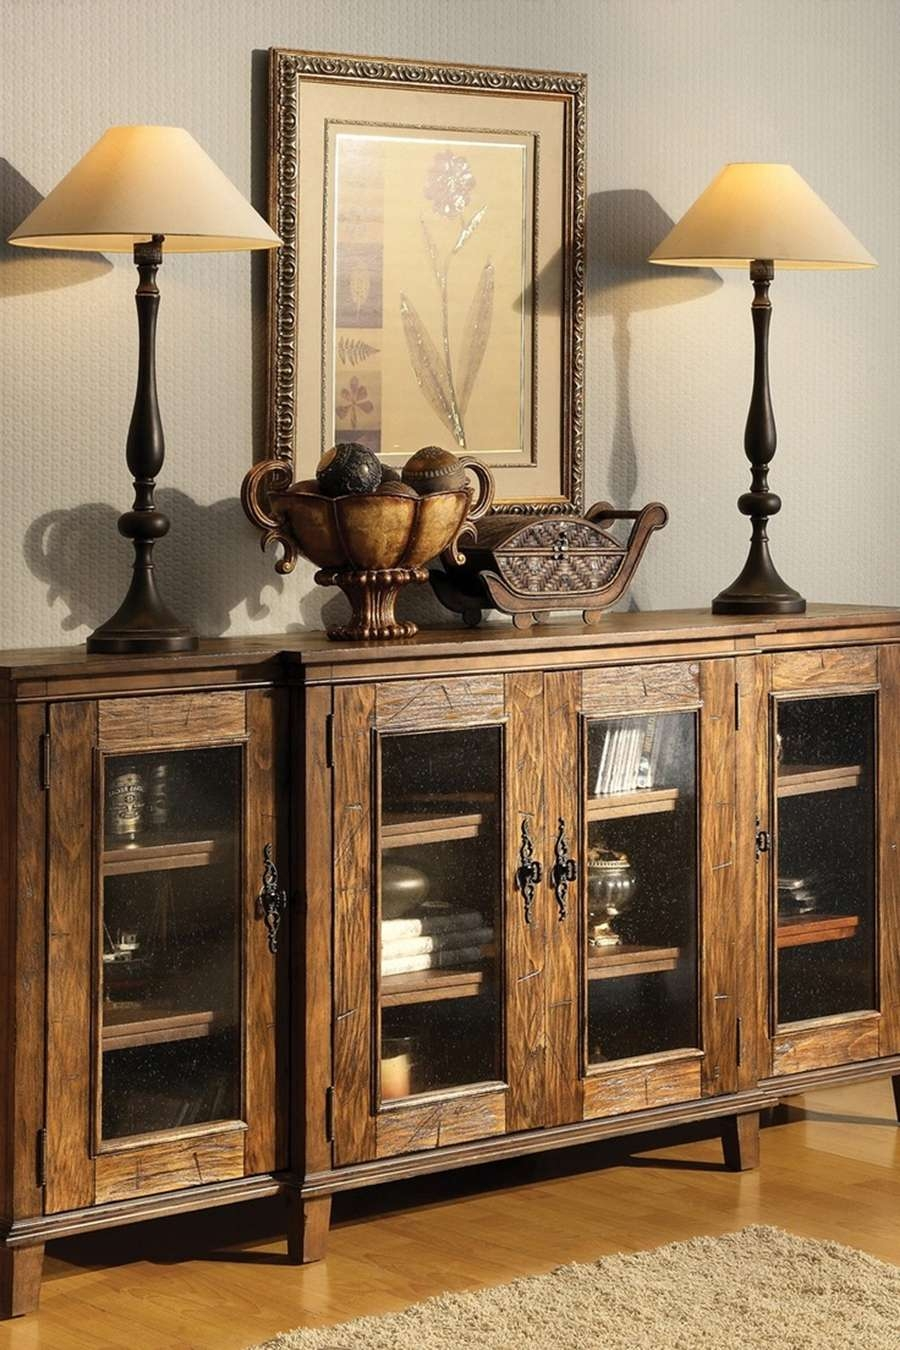 Rustic Sideboard Ideas : Uses Rustic Sideboard Furniture – Gazebo Throughout Rustic Sideboards Furniture (View 13 of 20)